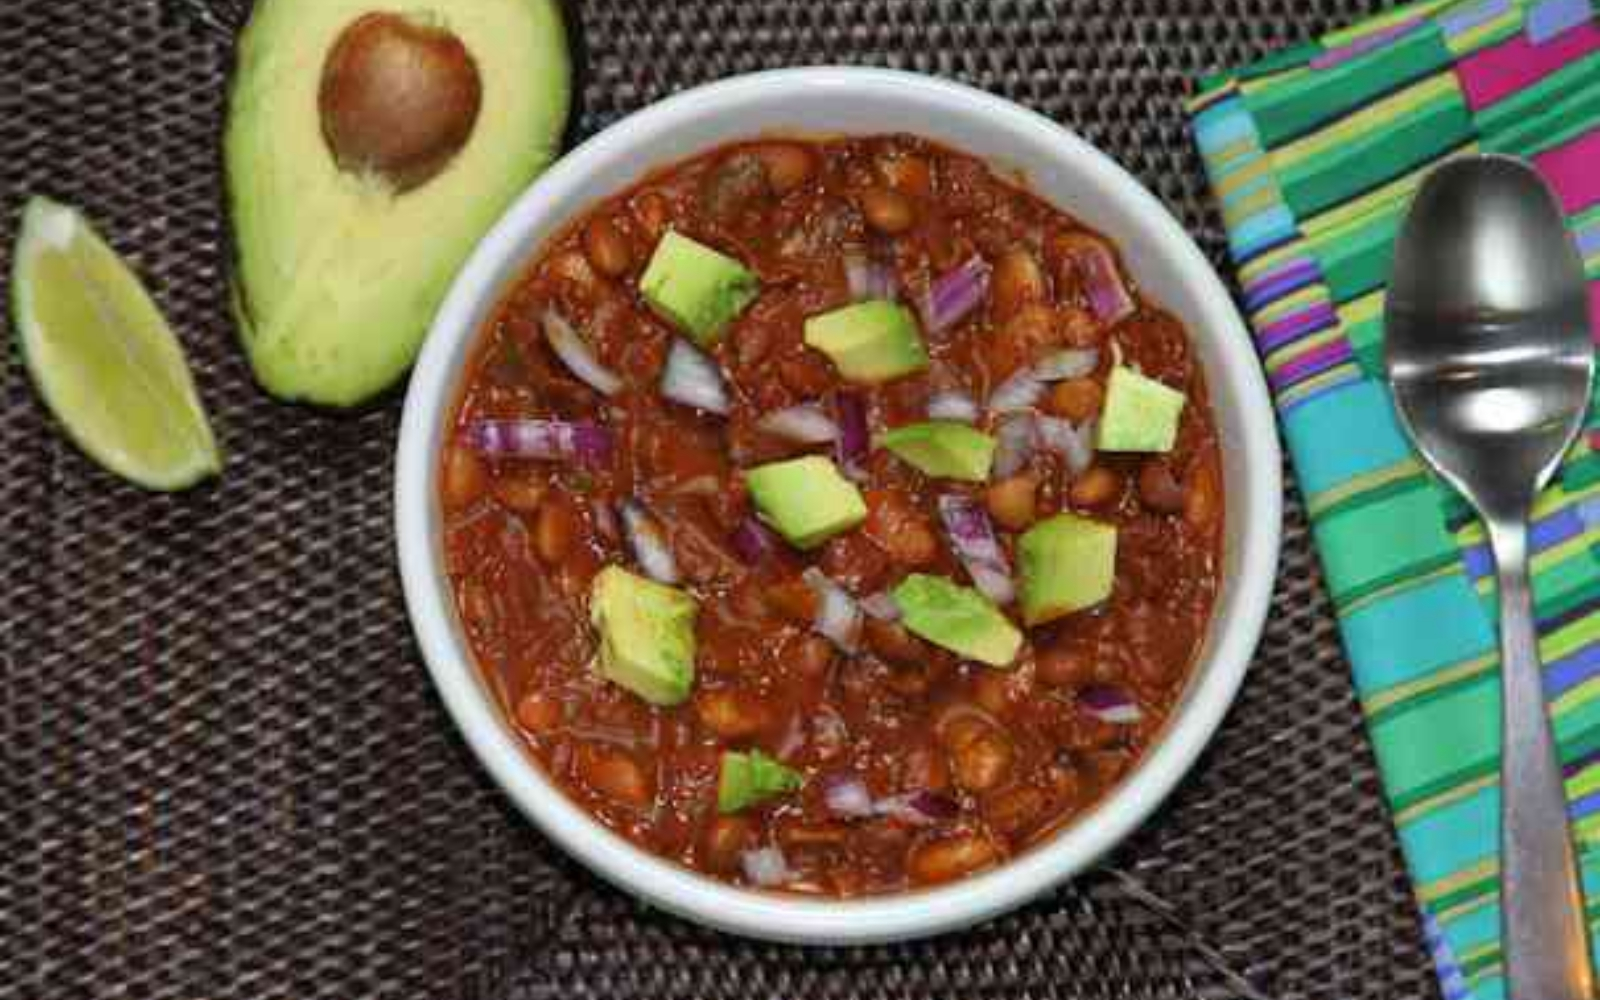 Vegan Chocolate Chipotle Chili